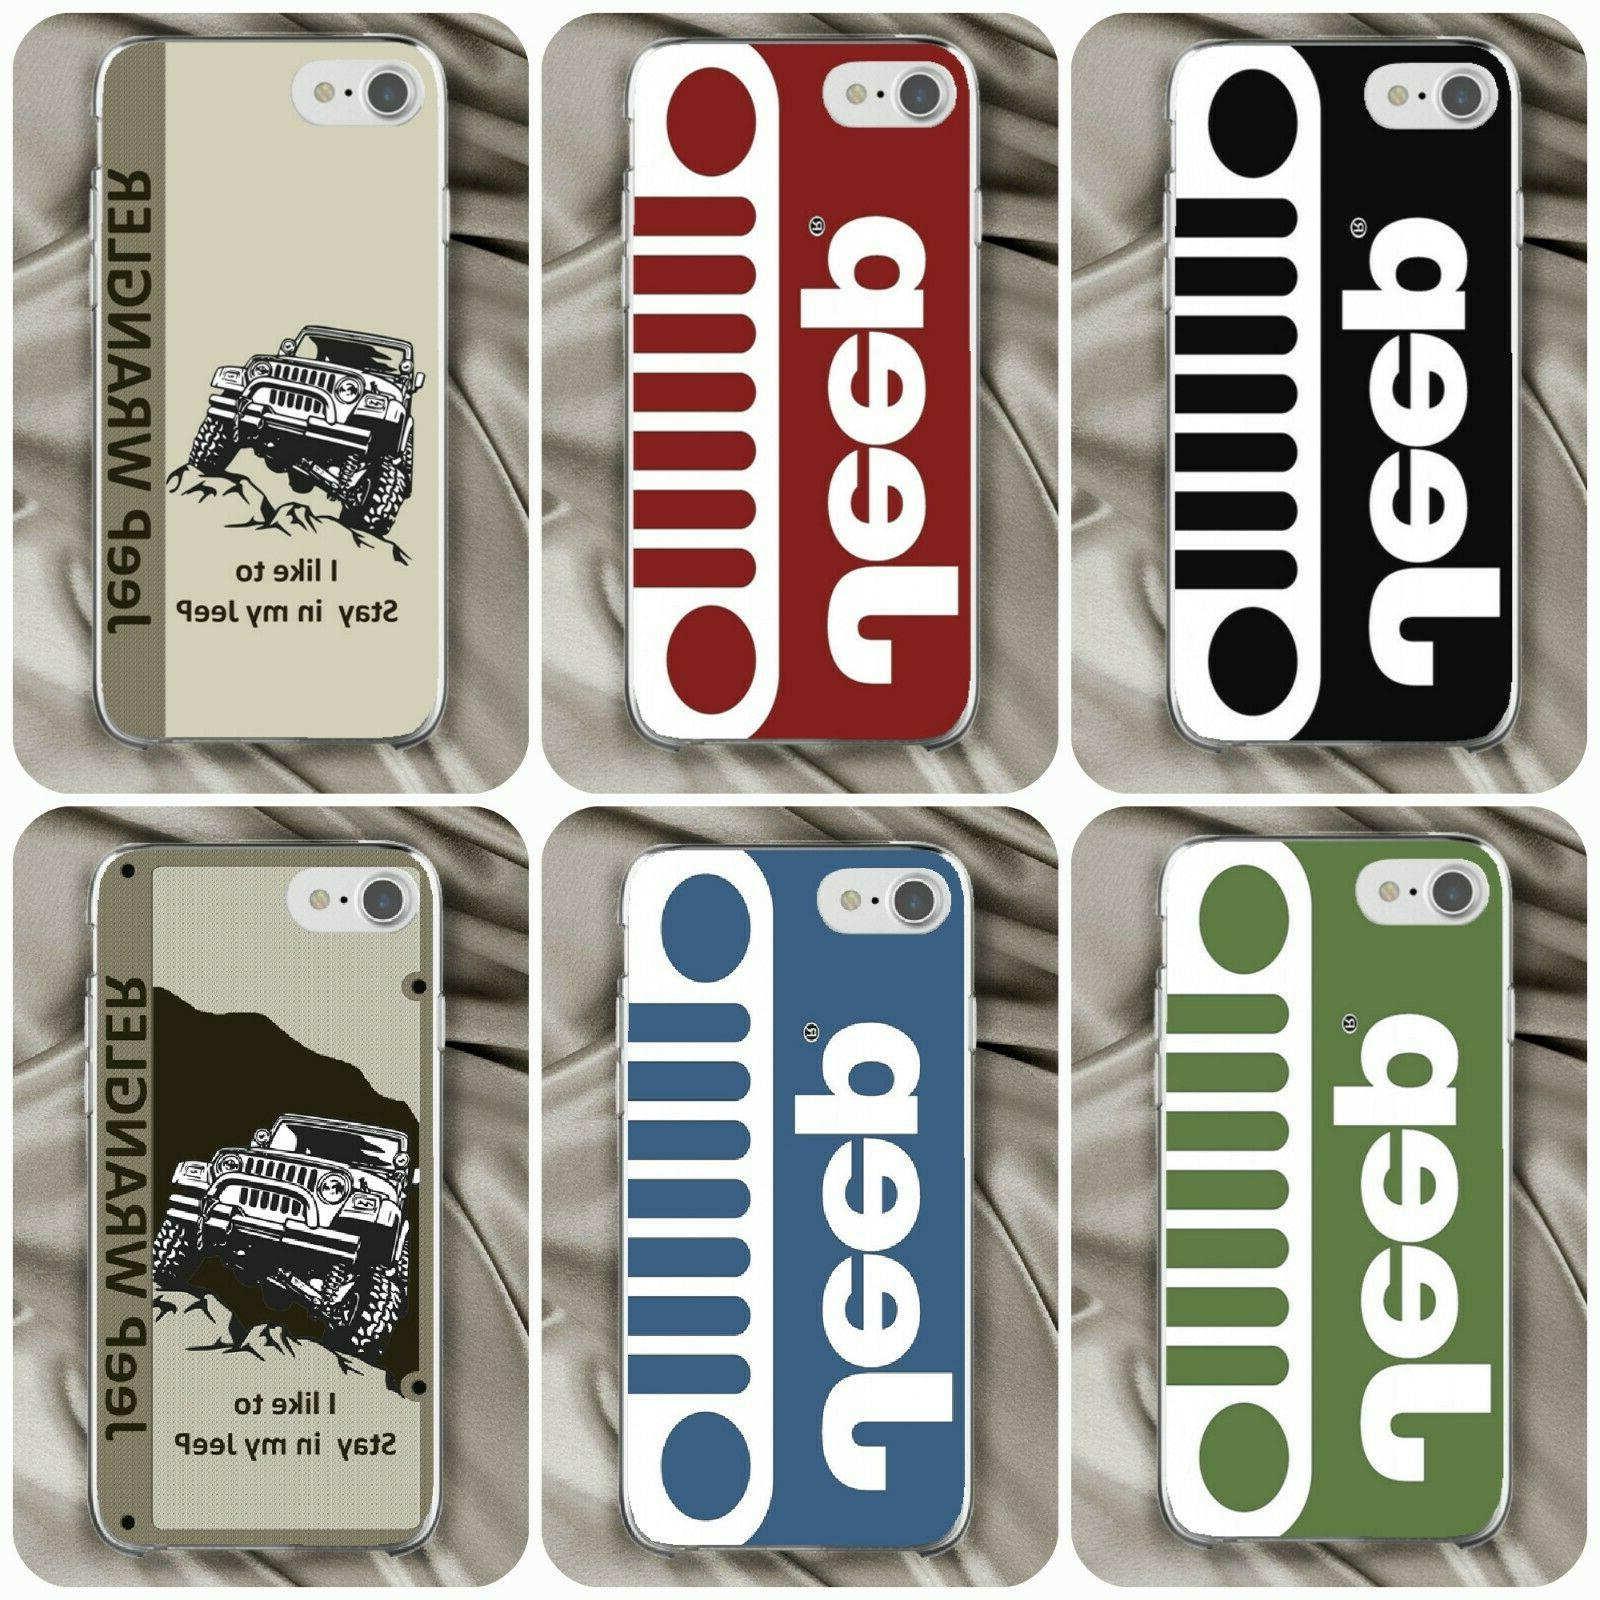 4x4 jeep off road car logo case